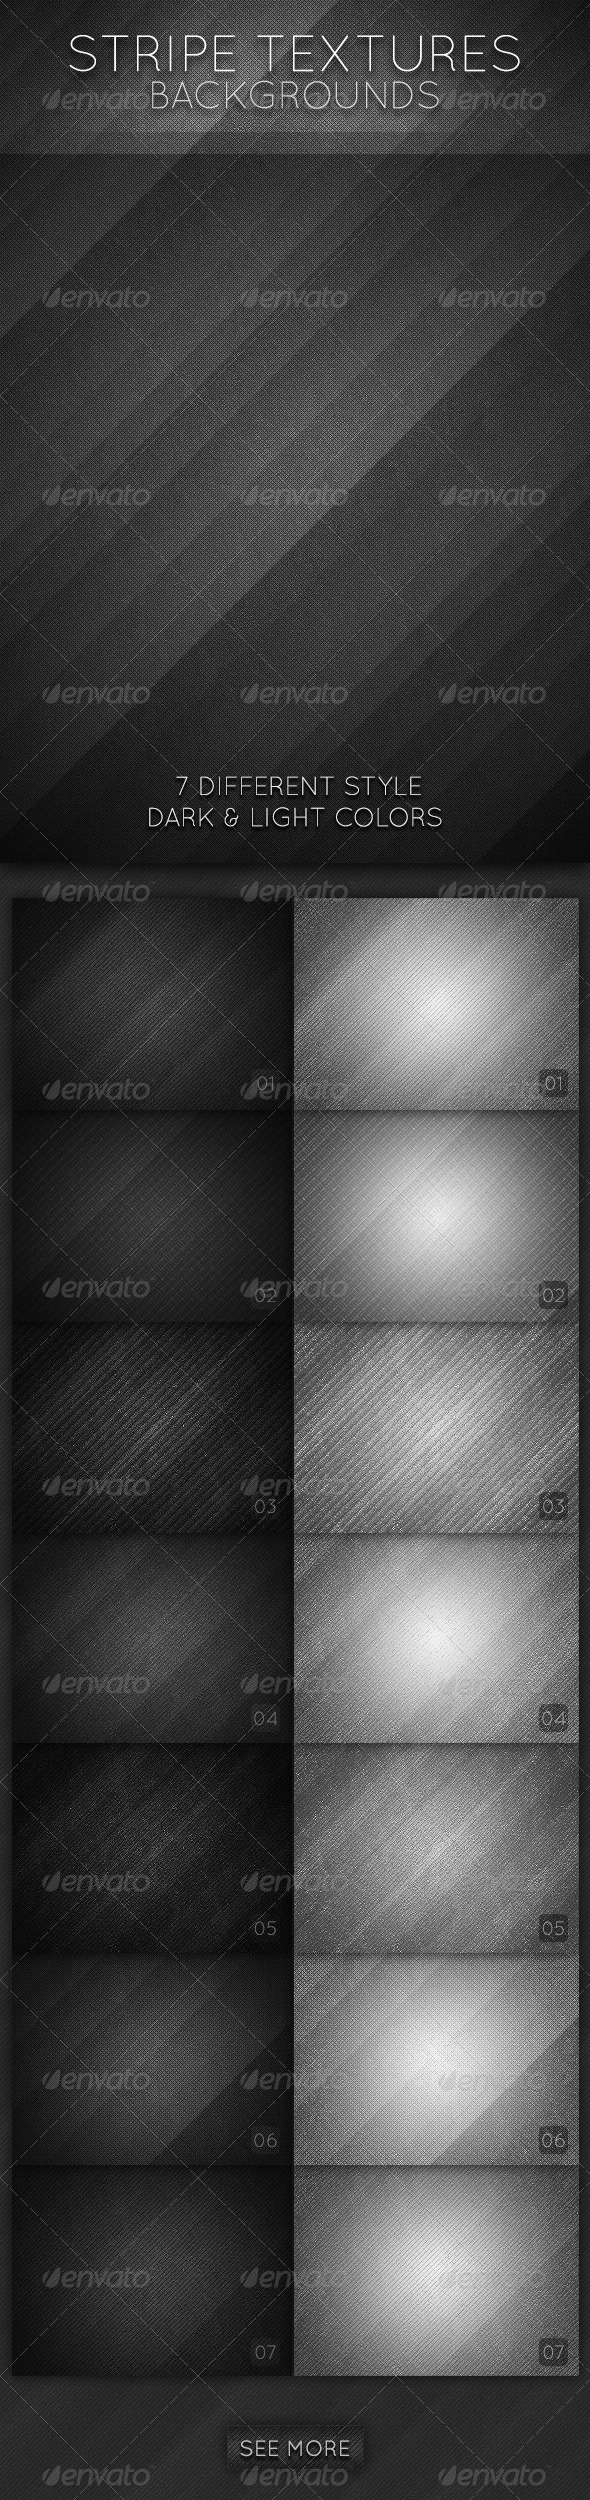 GraphicRiver Stripe Textures Backgrounds 2532656